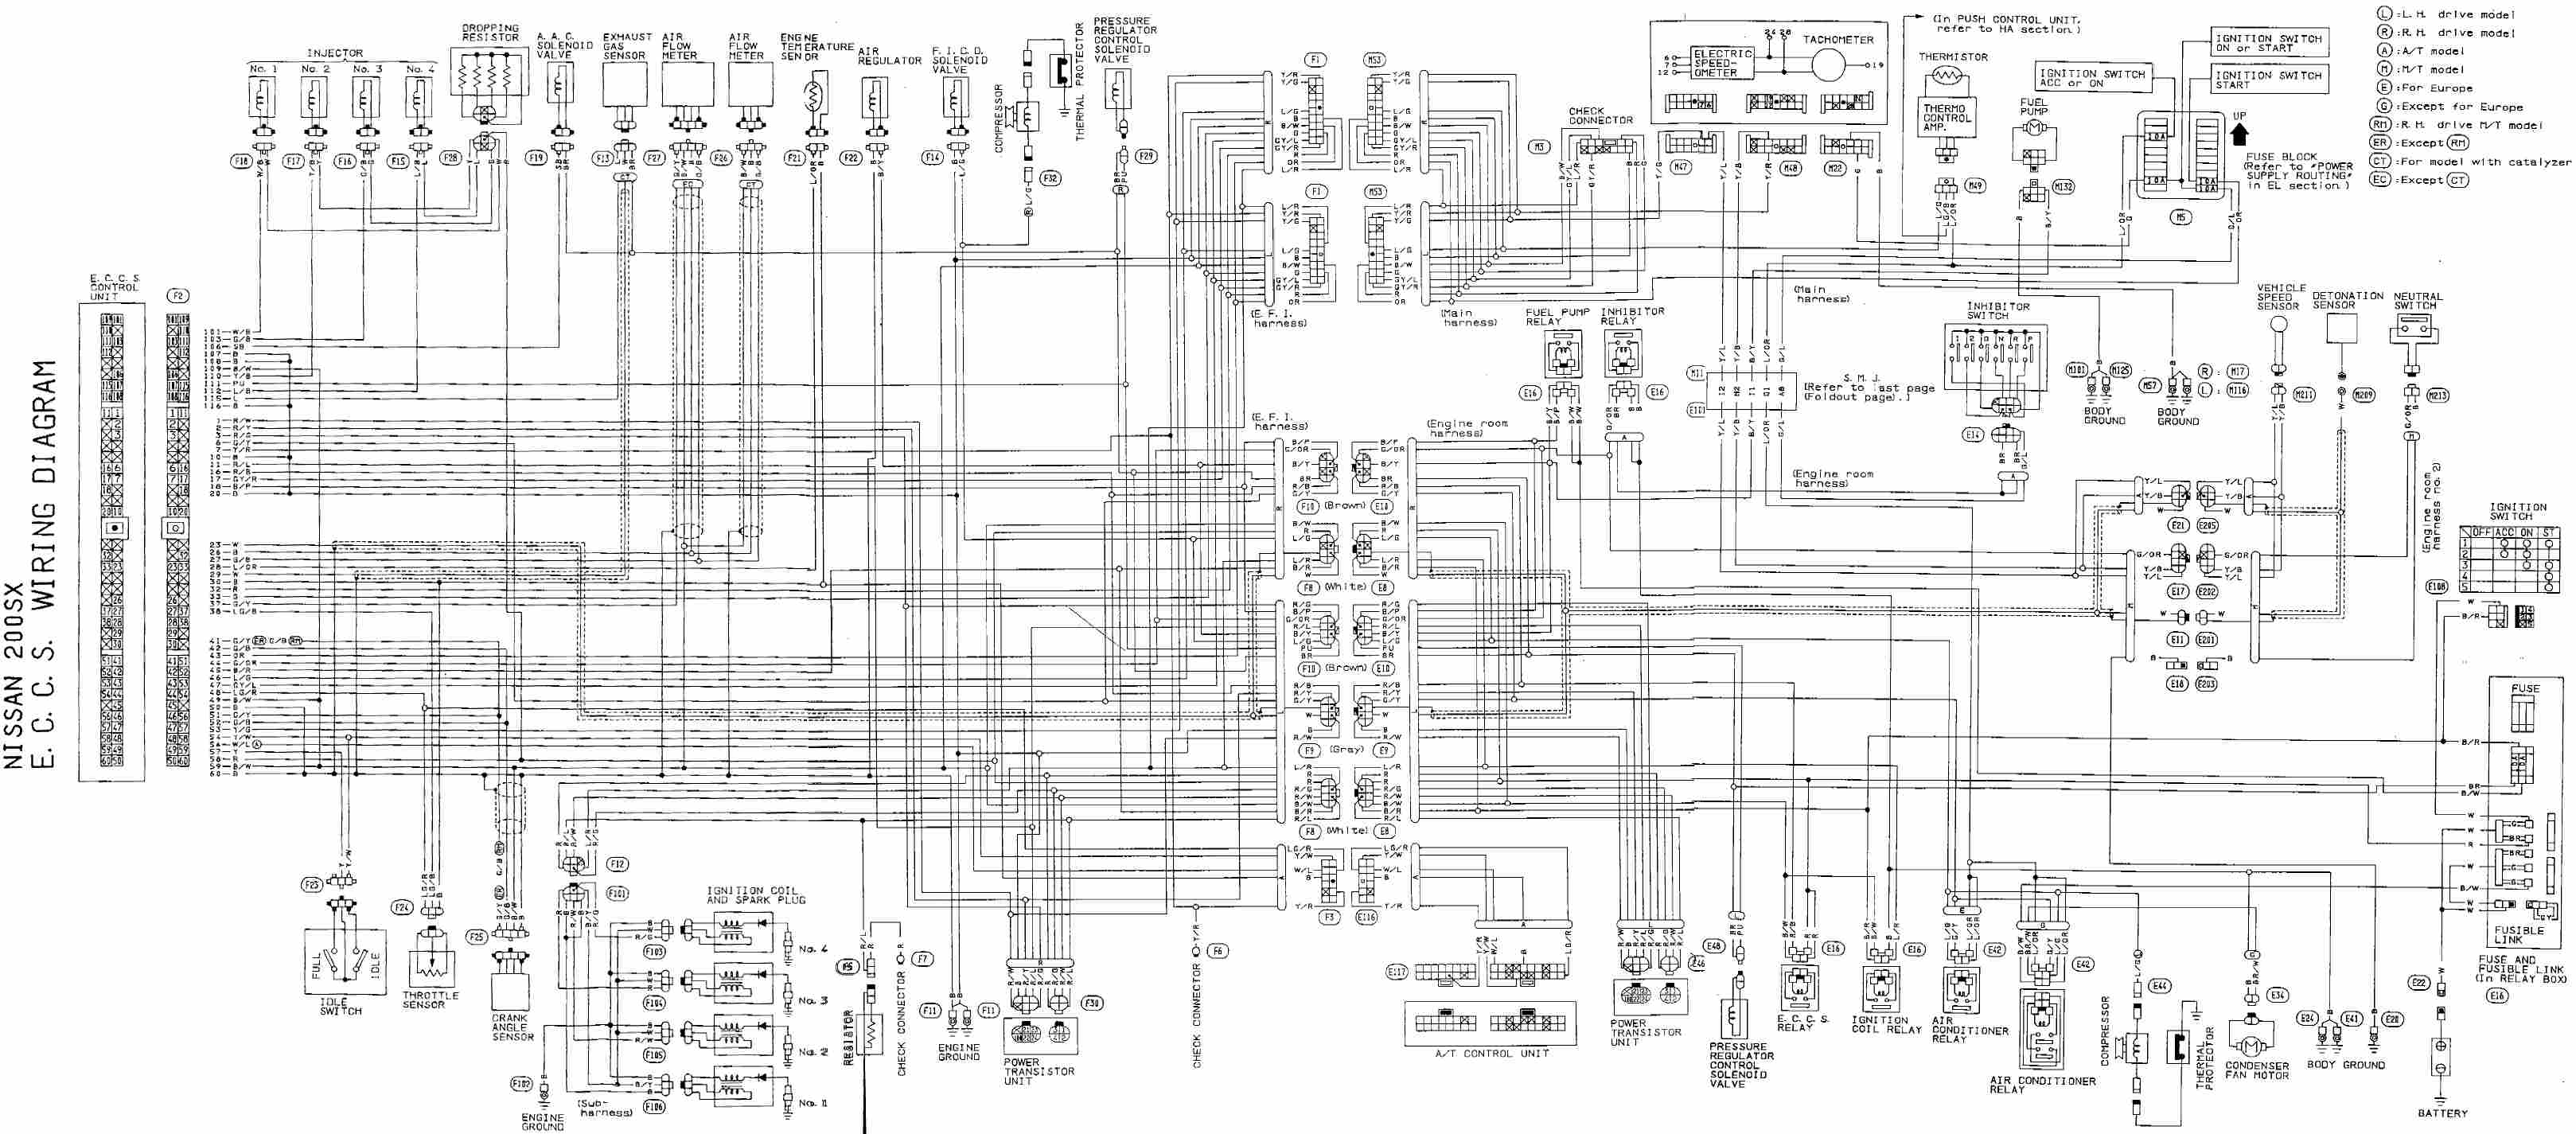 Wire Diagram For Wiring An Electrical Schematic Nissan Car Manuals Diagrams Pdf Fault Codes Download Complete Eccs Of 200x